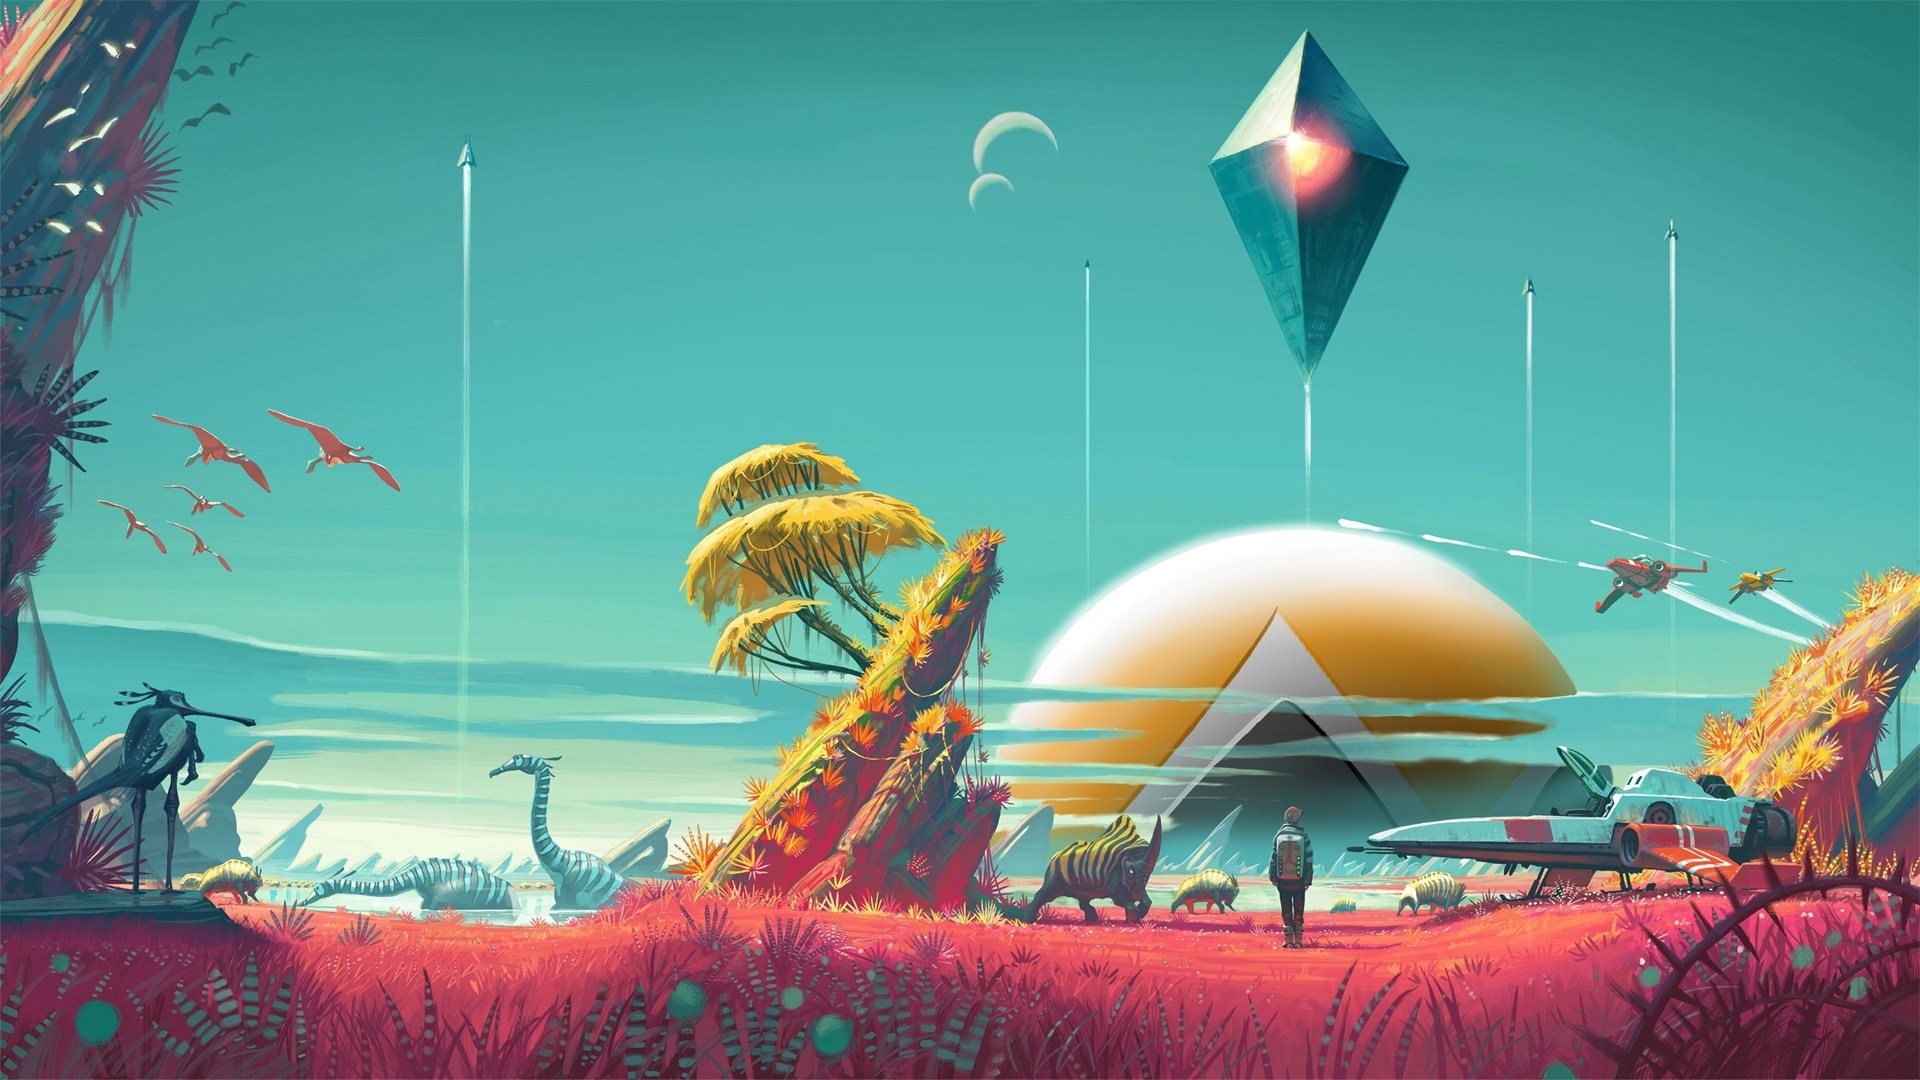 No Man's Sky Free Wallpaper and Background